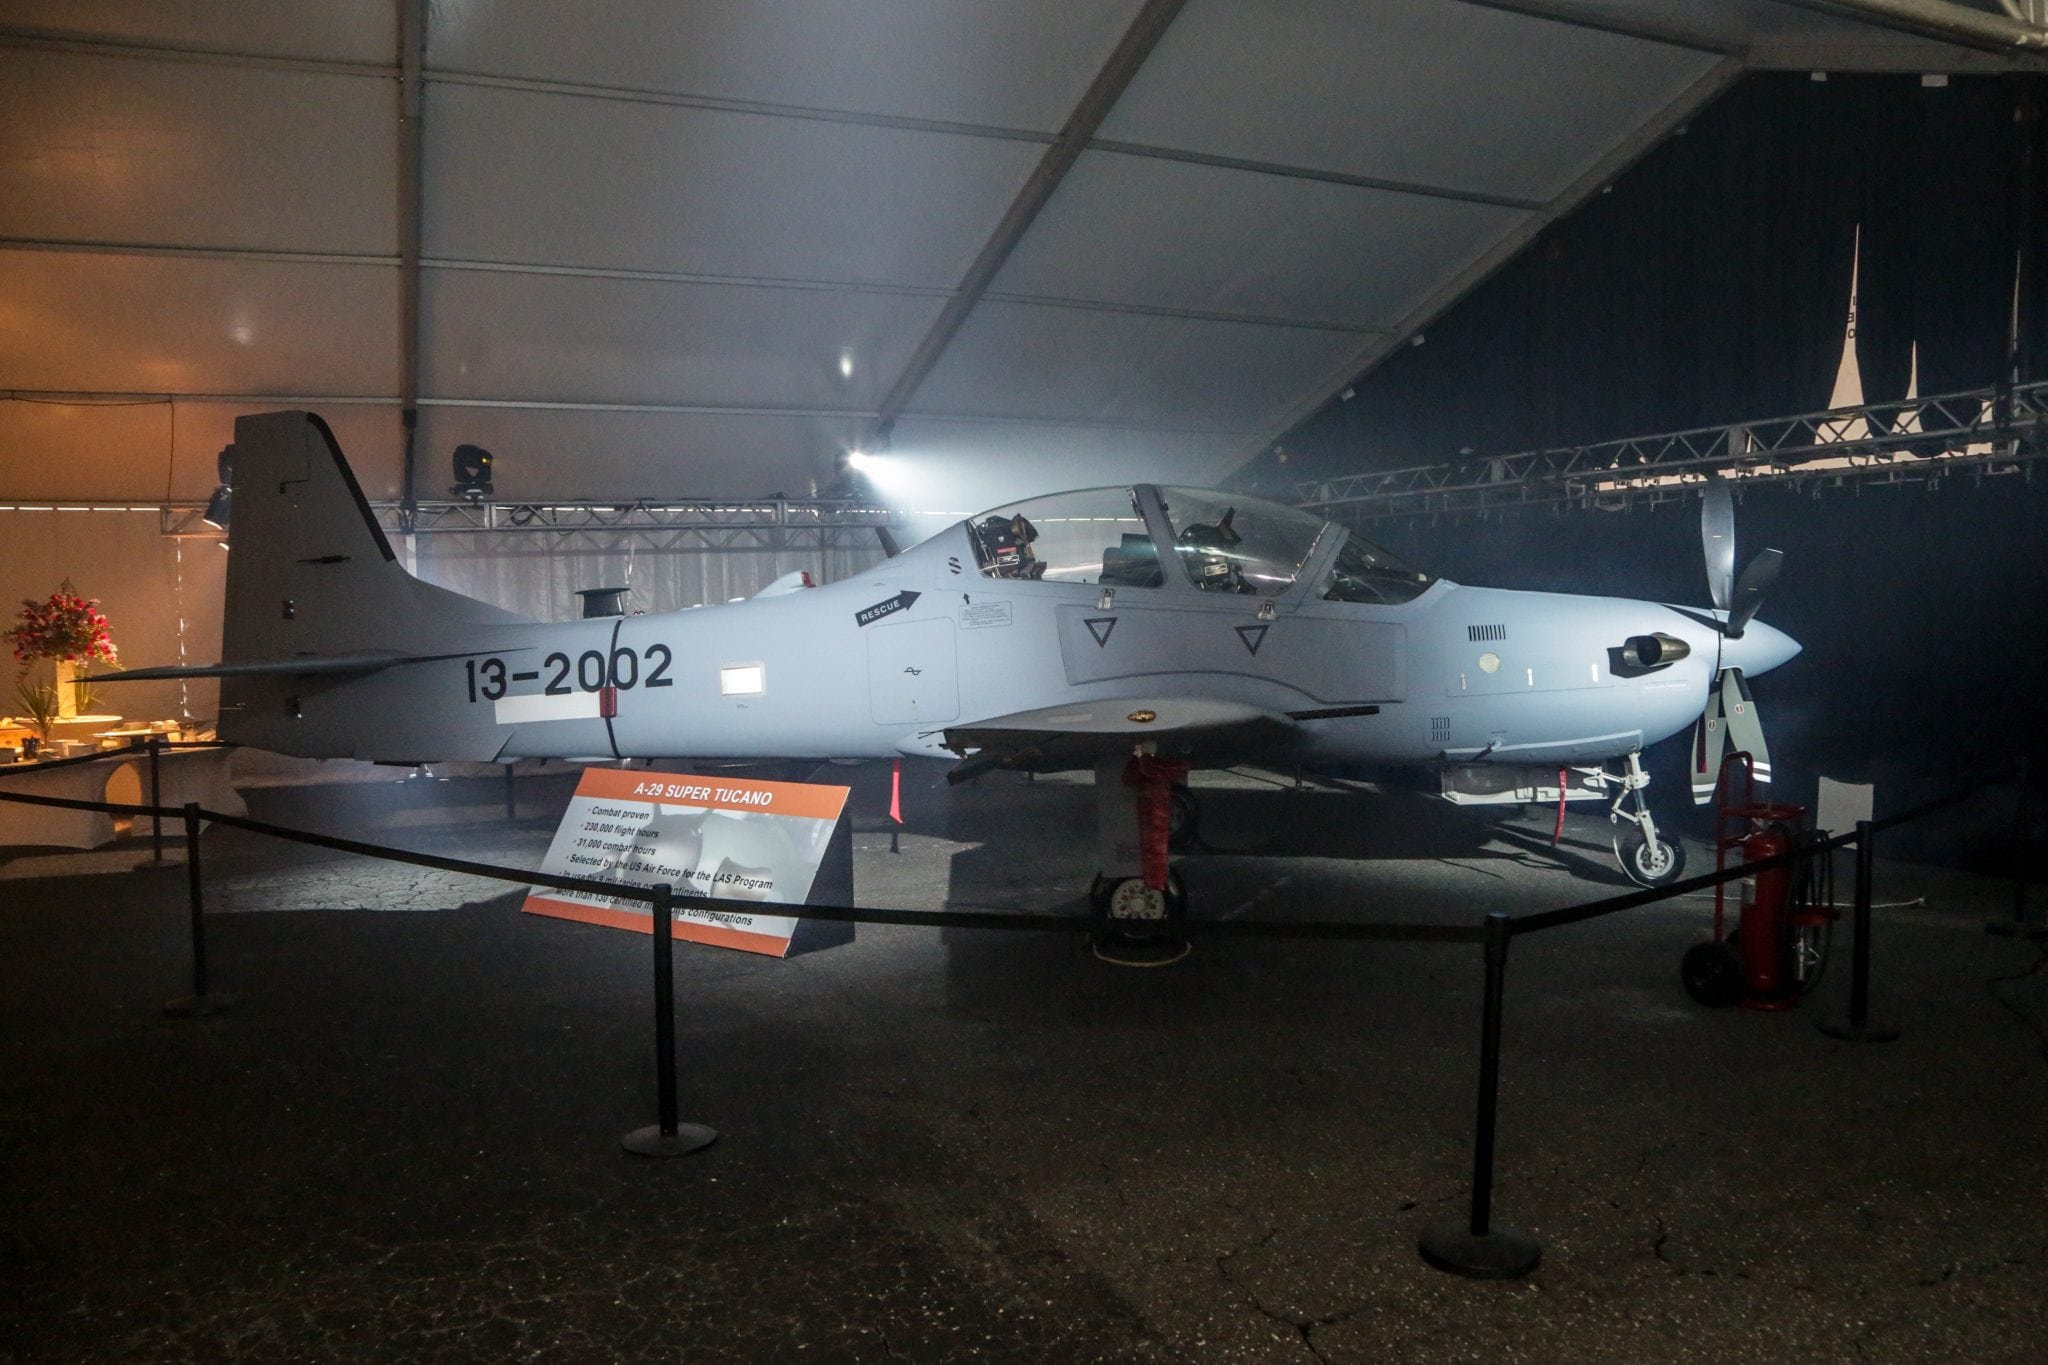 The first US built A-29 Super Tucano aircraft